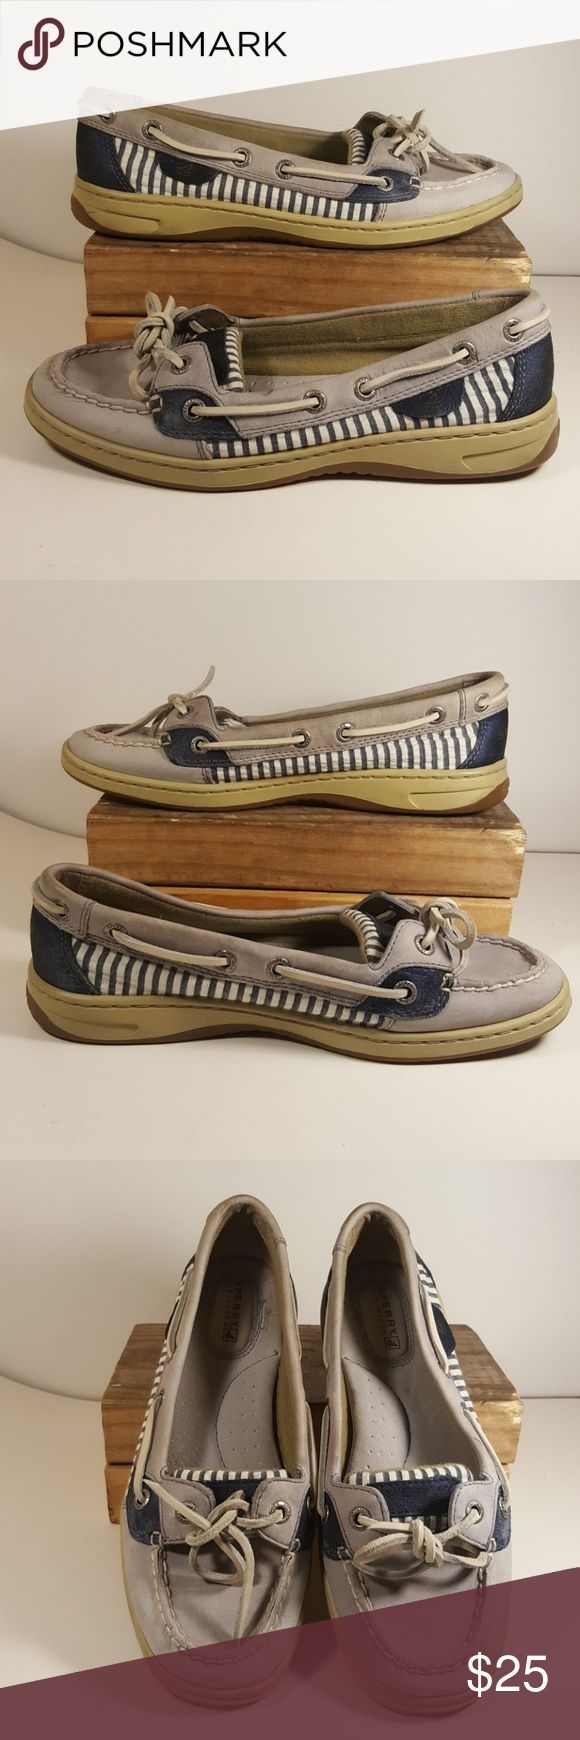 Sperry Top-Siders Gray Blue Boat Shoes Women Sz 6M Up for your consideration is this pair of blue and gray Sperry Top-Siders for women, size 6M They are in excellent condition.  Feel free to ask any questions  Please check my other items, I have more shoes and clothes for the whole family.  Thank you and have a great day. Sperry Top-Sider Shoes Flats & Loafers